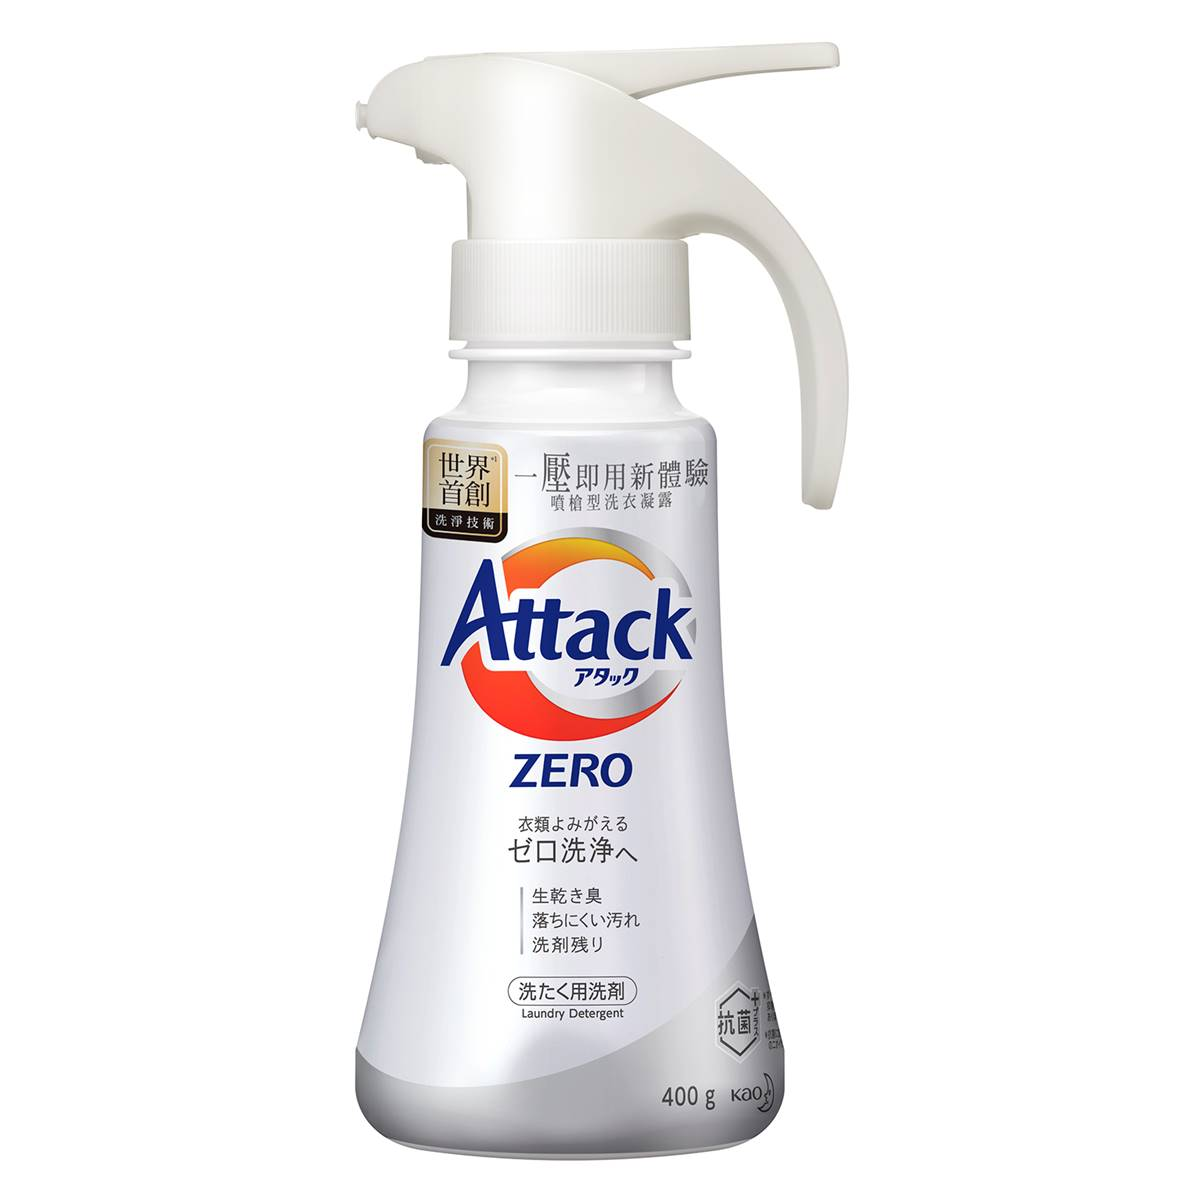 AttackZERO超濃縮噴槍型洗衣凝露400G 【康是美】